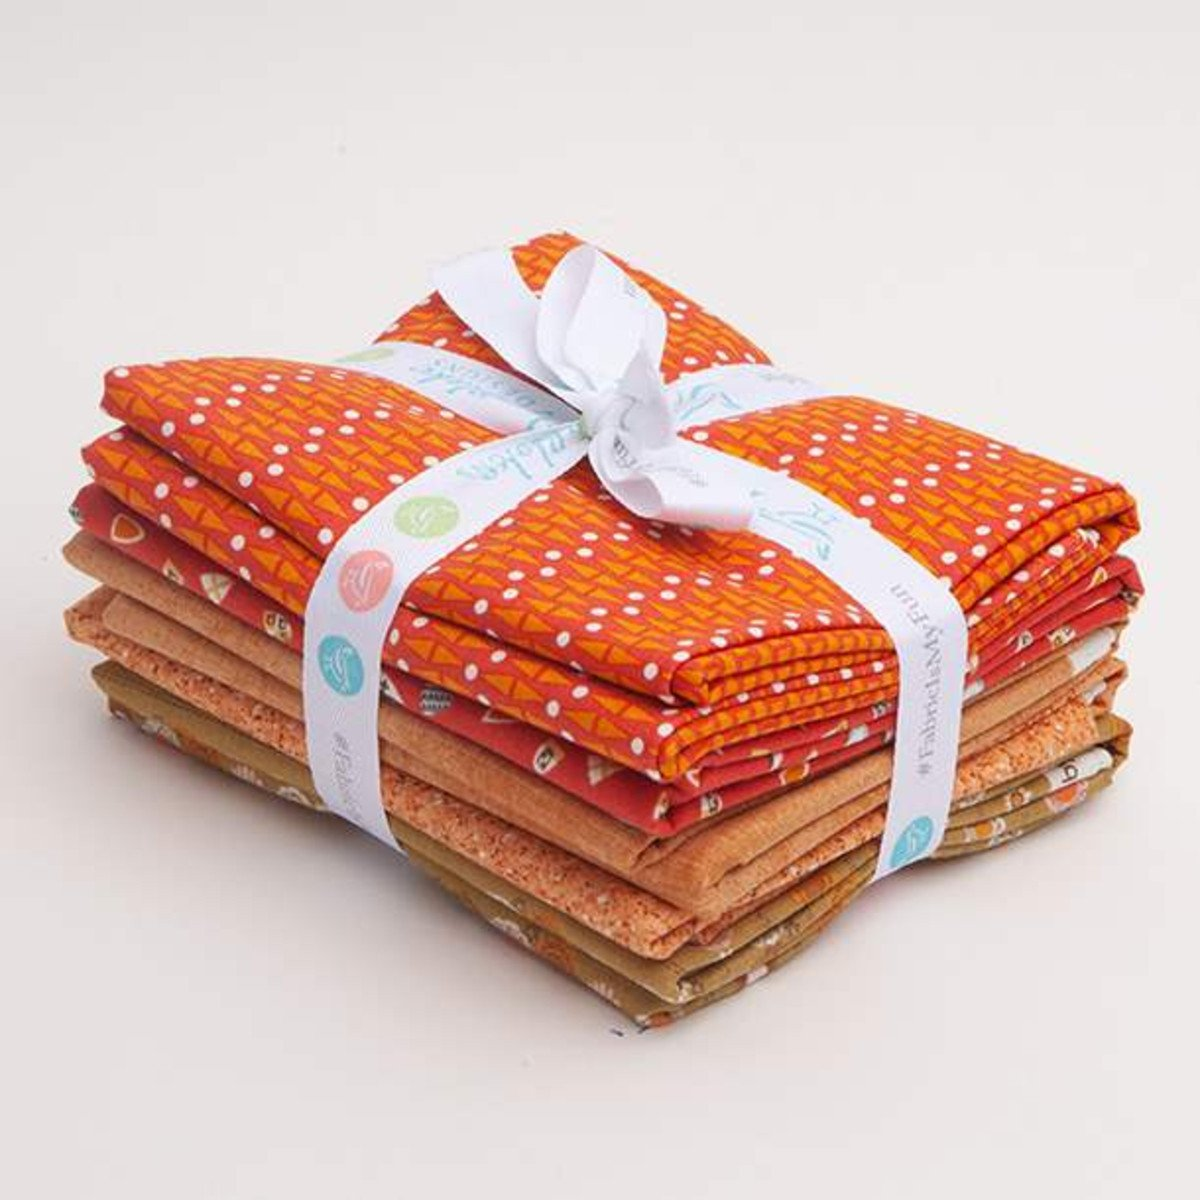 Curated Fabric Bundle - Orange #2